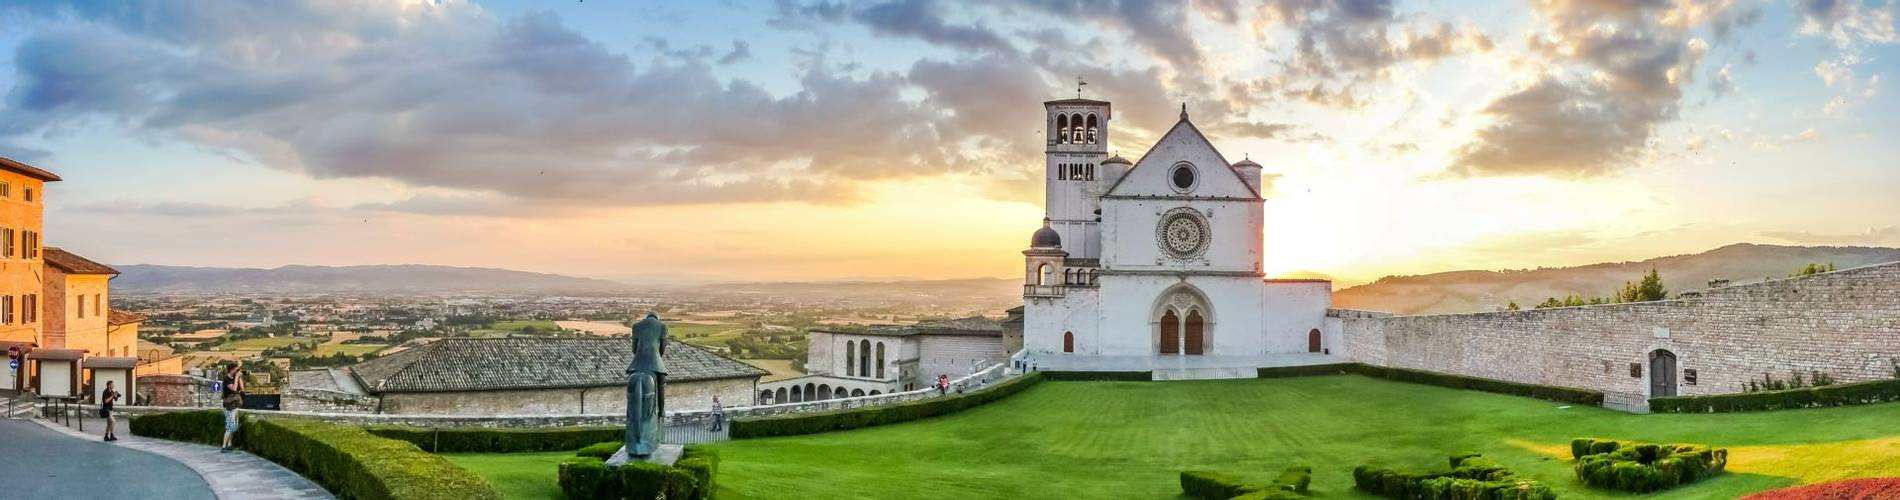 Basilica of St. Francis of Assisi, Umbria, Italy.jpg